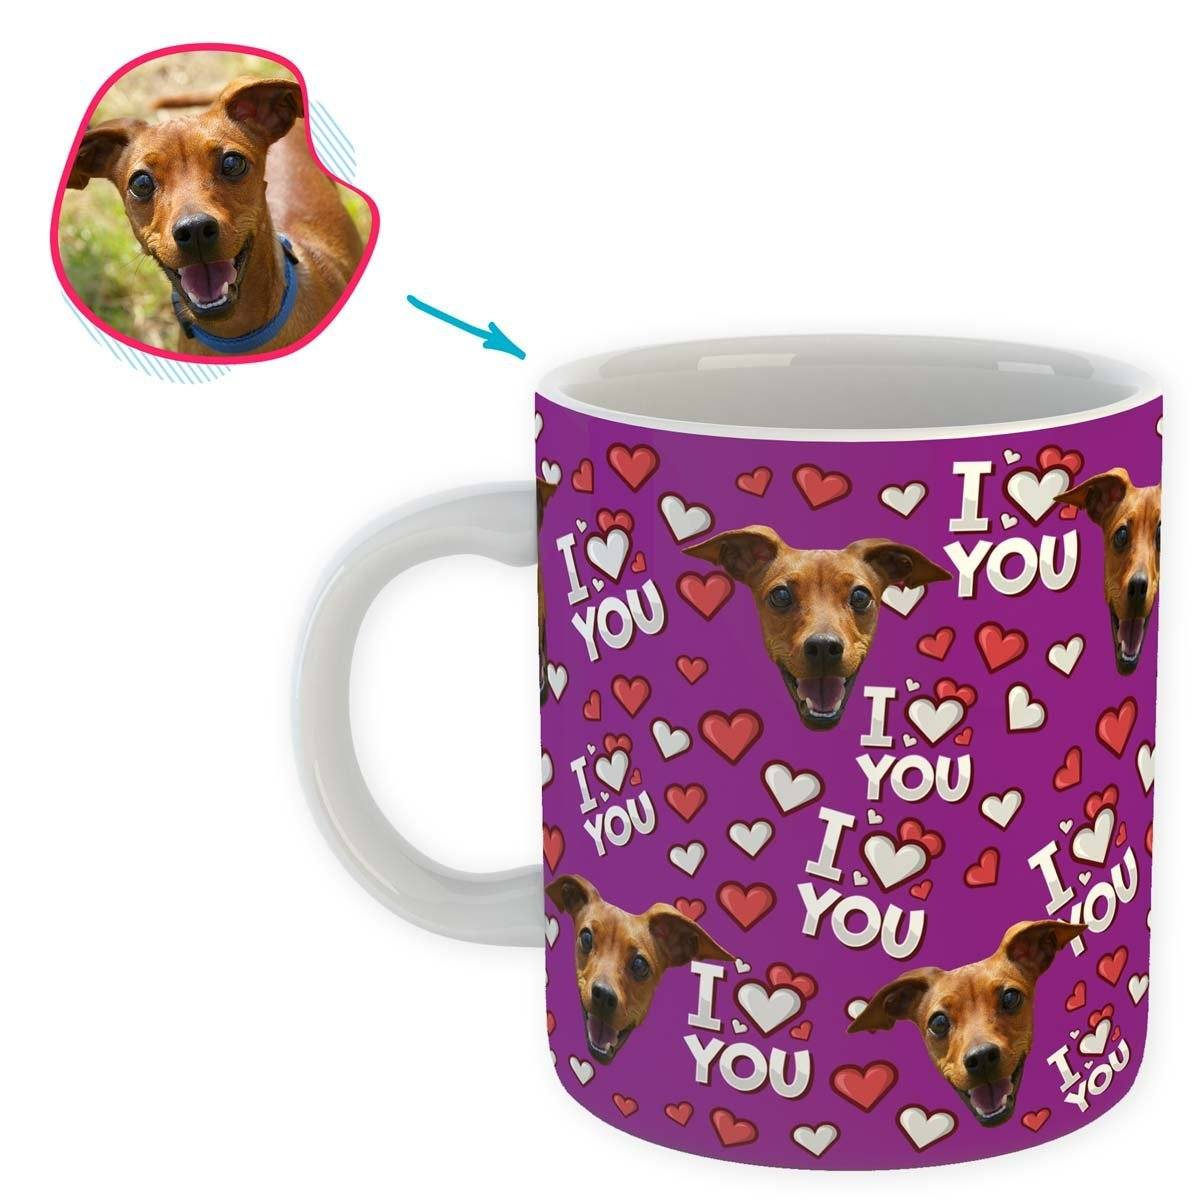 purple I Love You mug personalized with photo of face printed on it